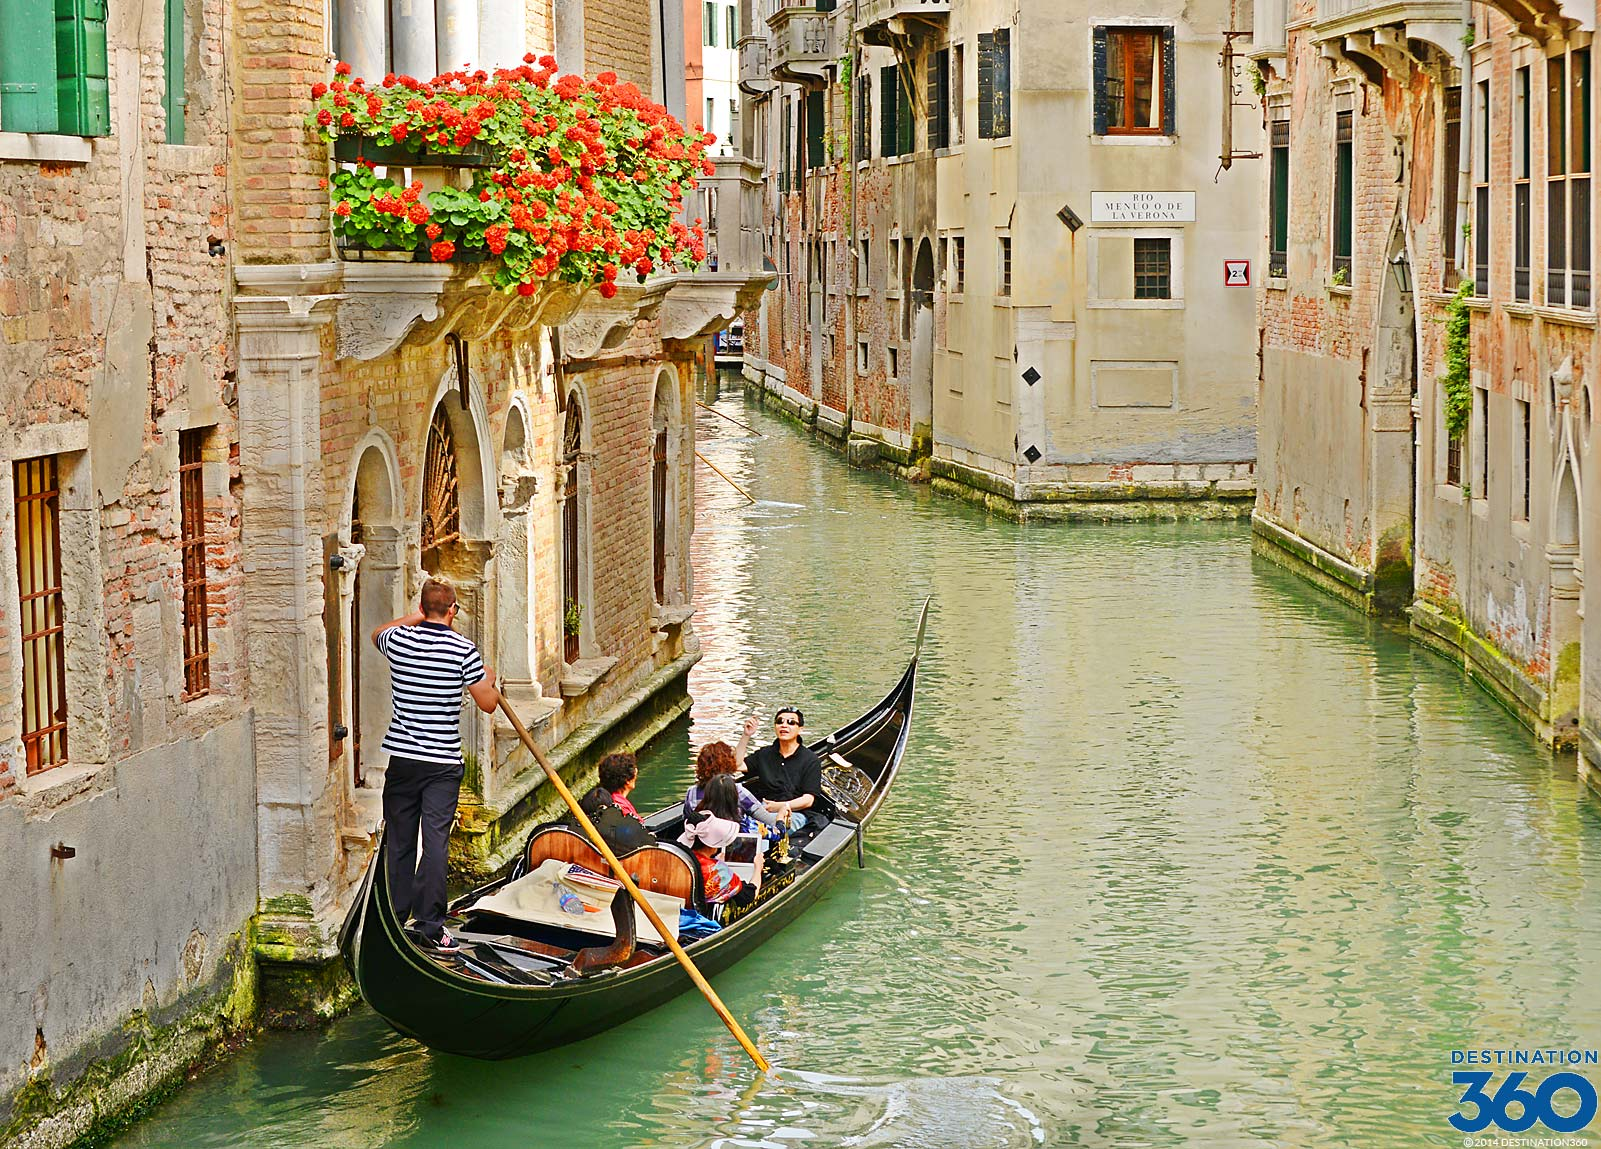 Things to do in Venice - Attractions in Venice Italy